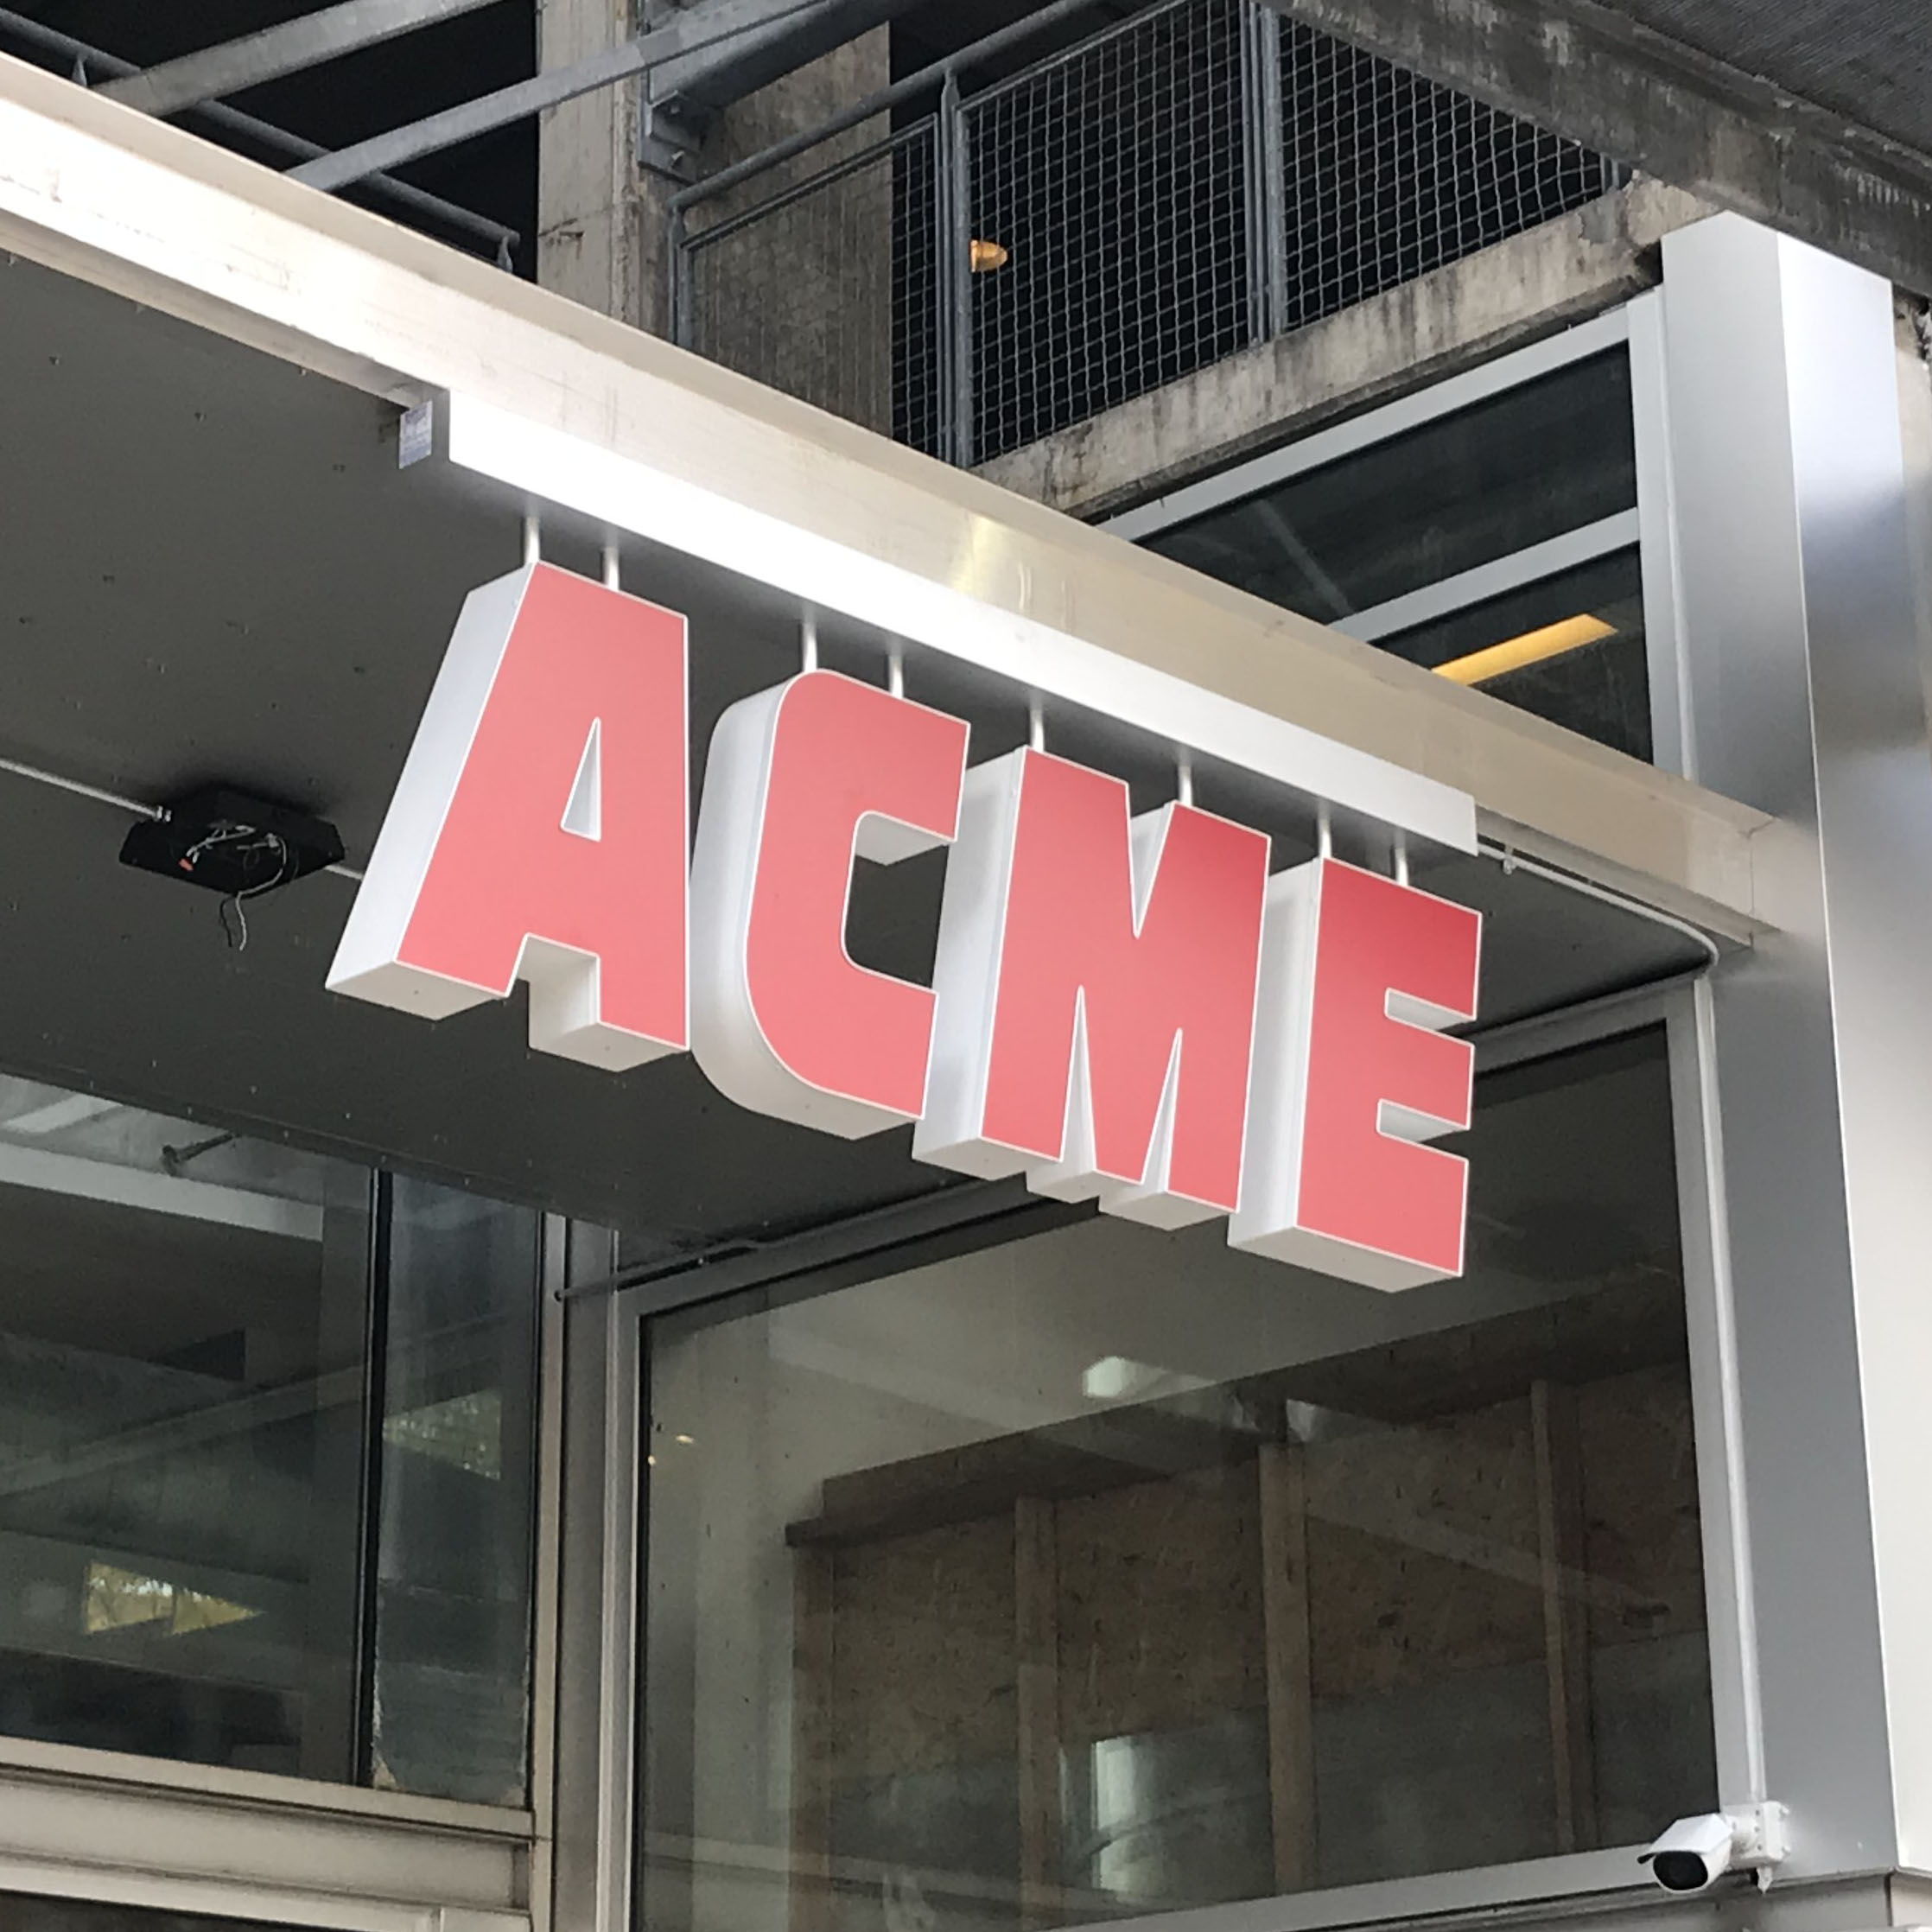 acme sign